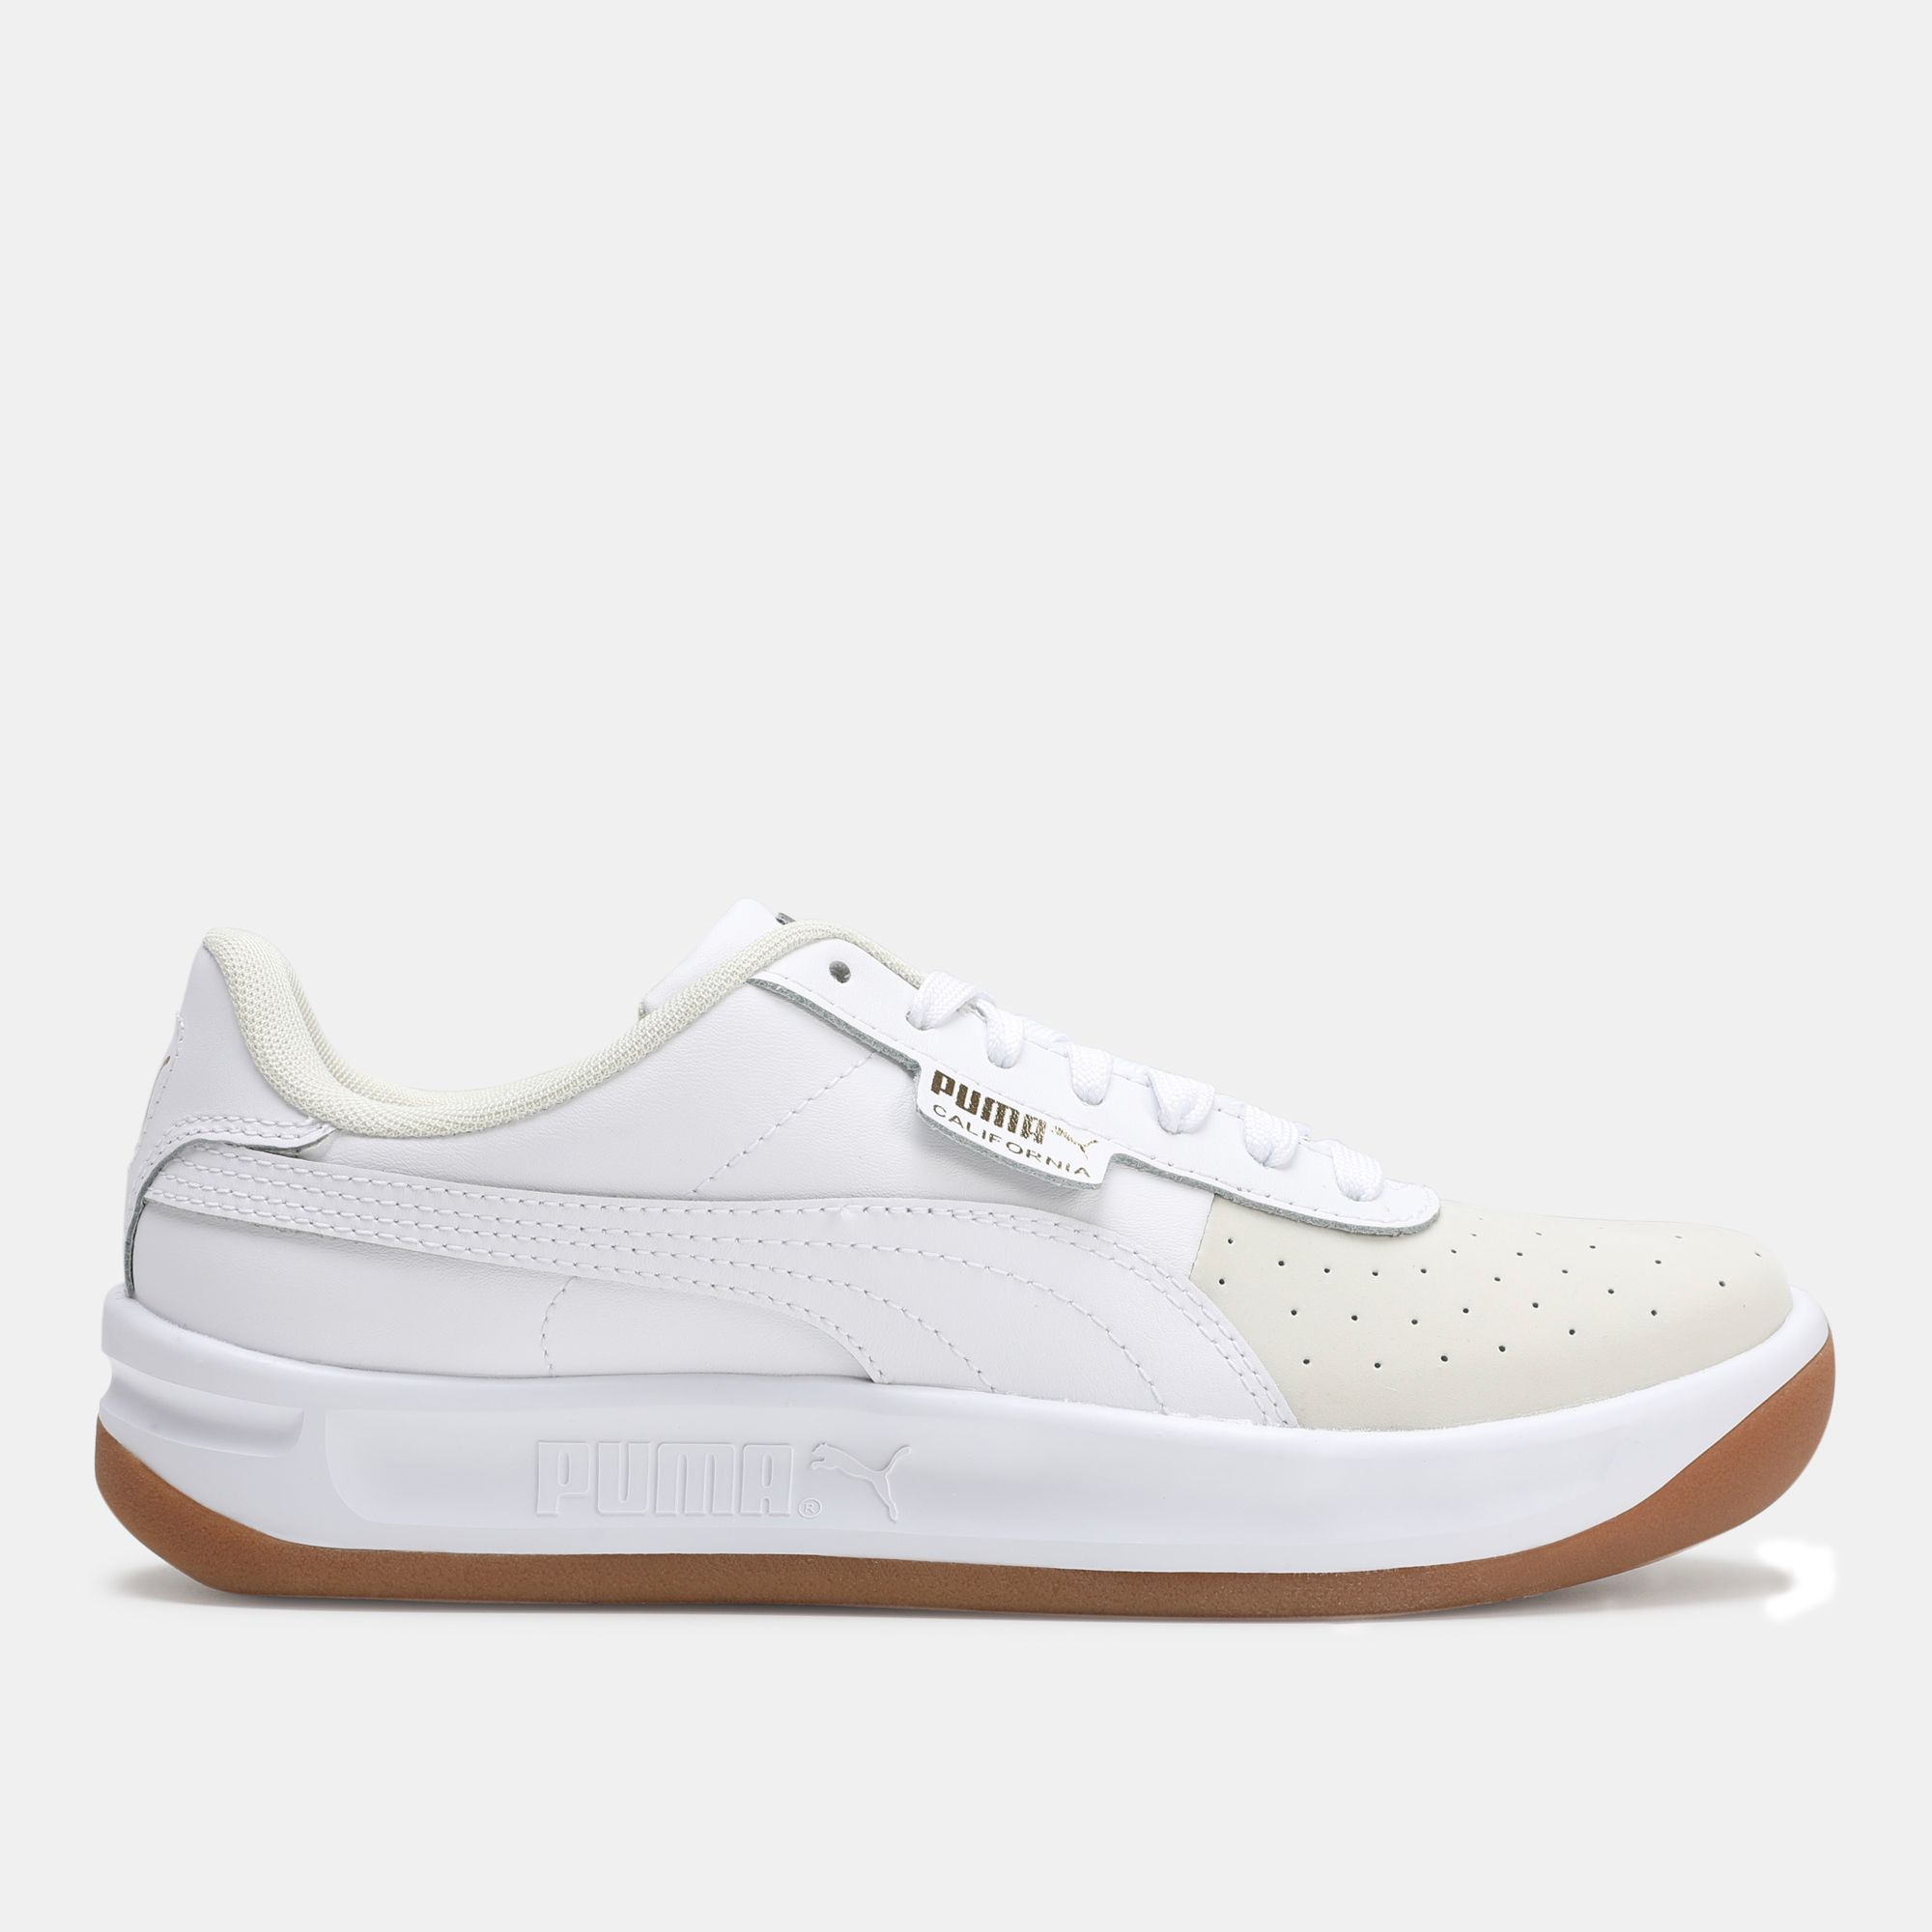 PUMA California Exotic Shoe | Sneakers | Shoes | Sports